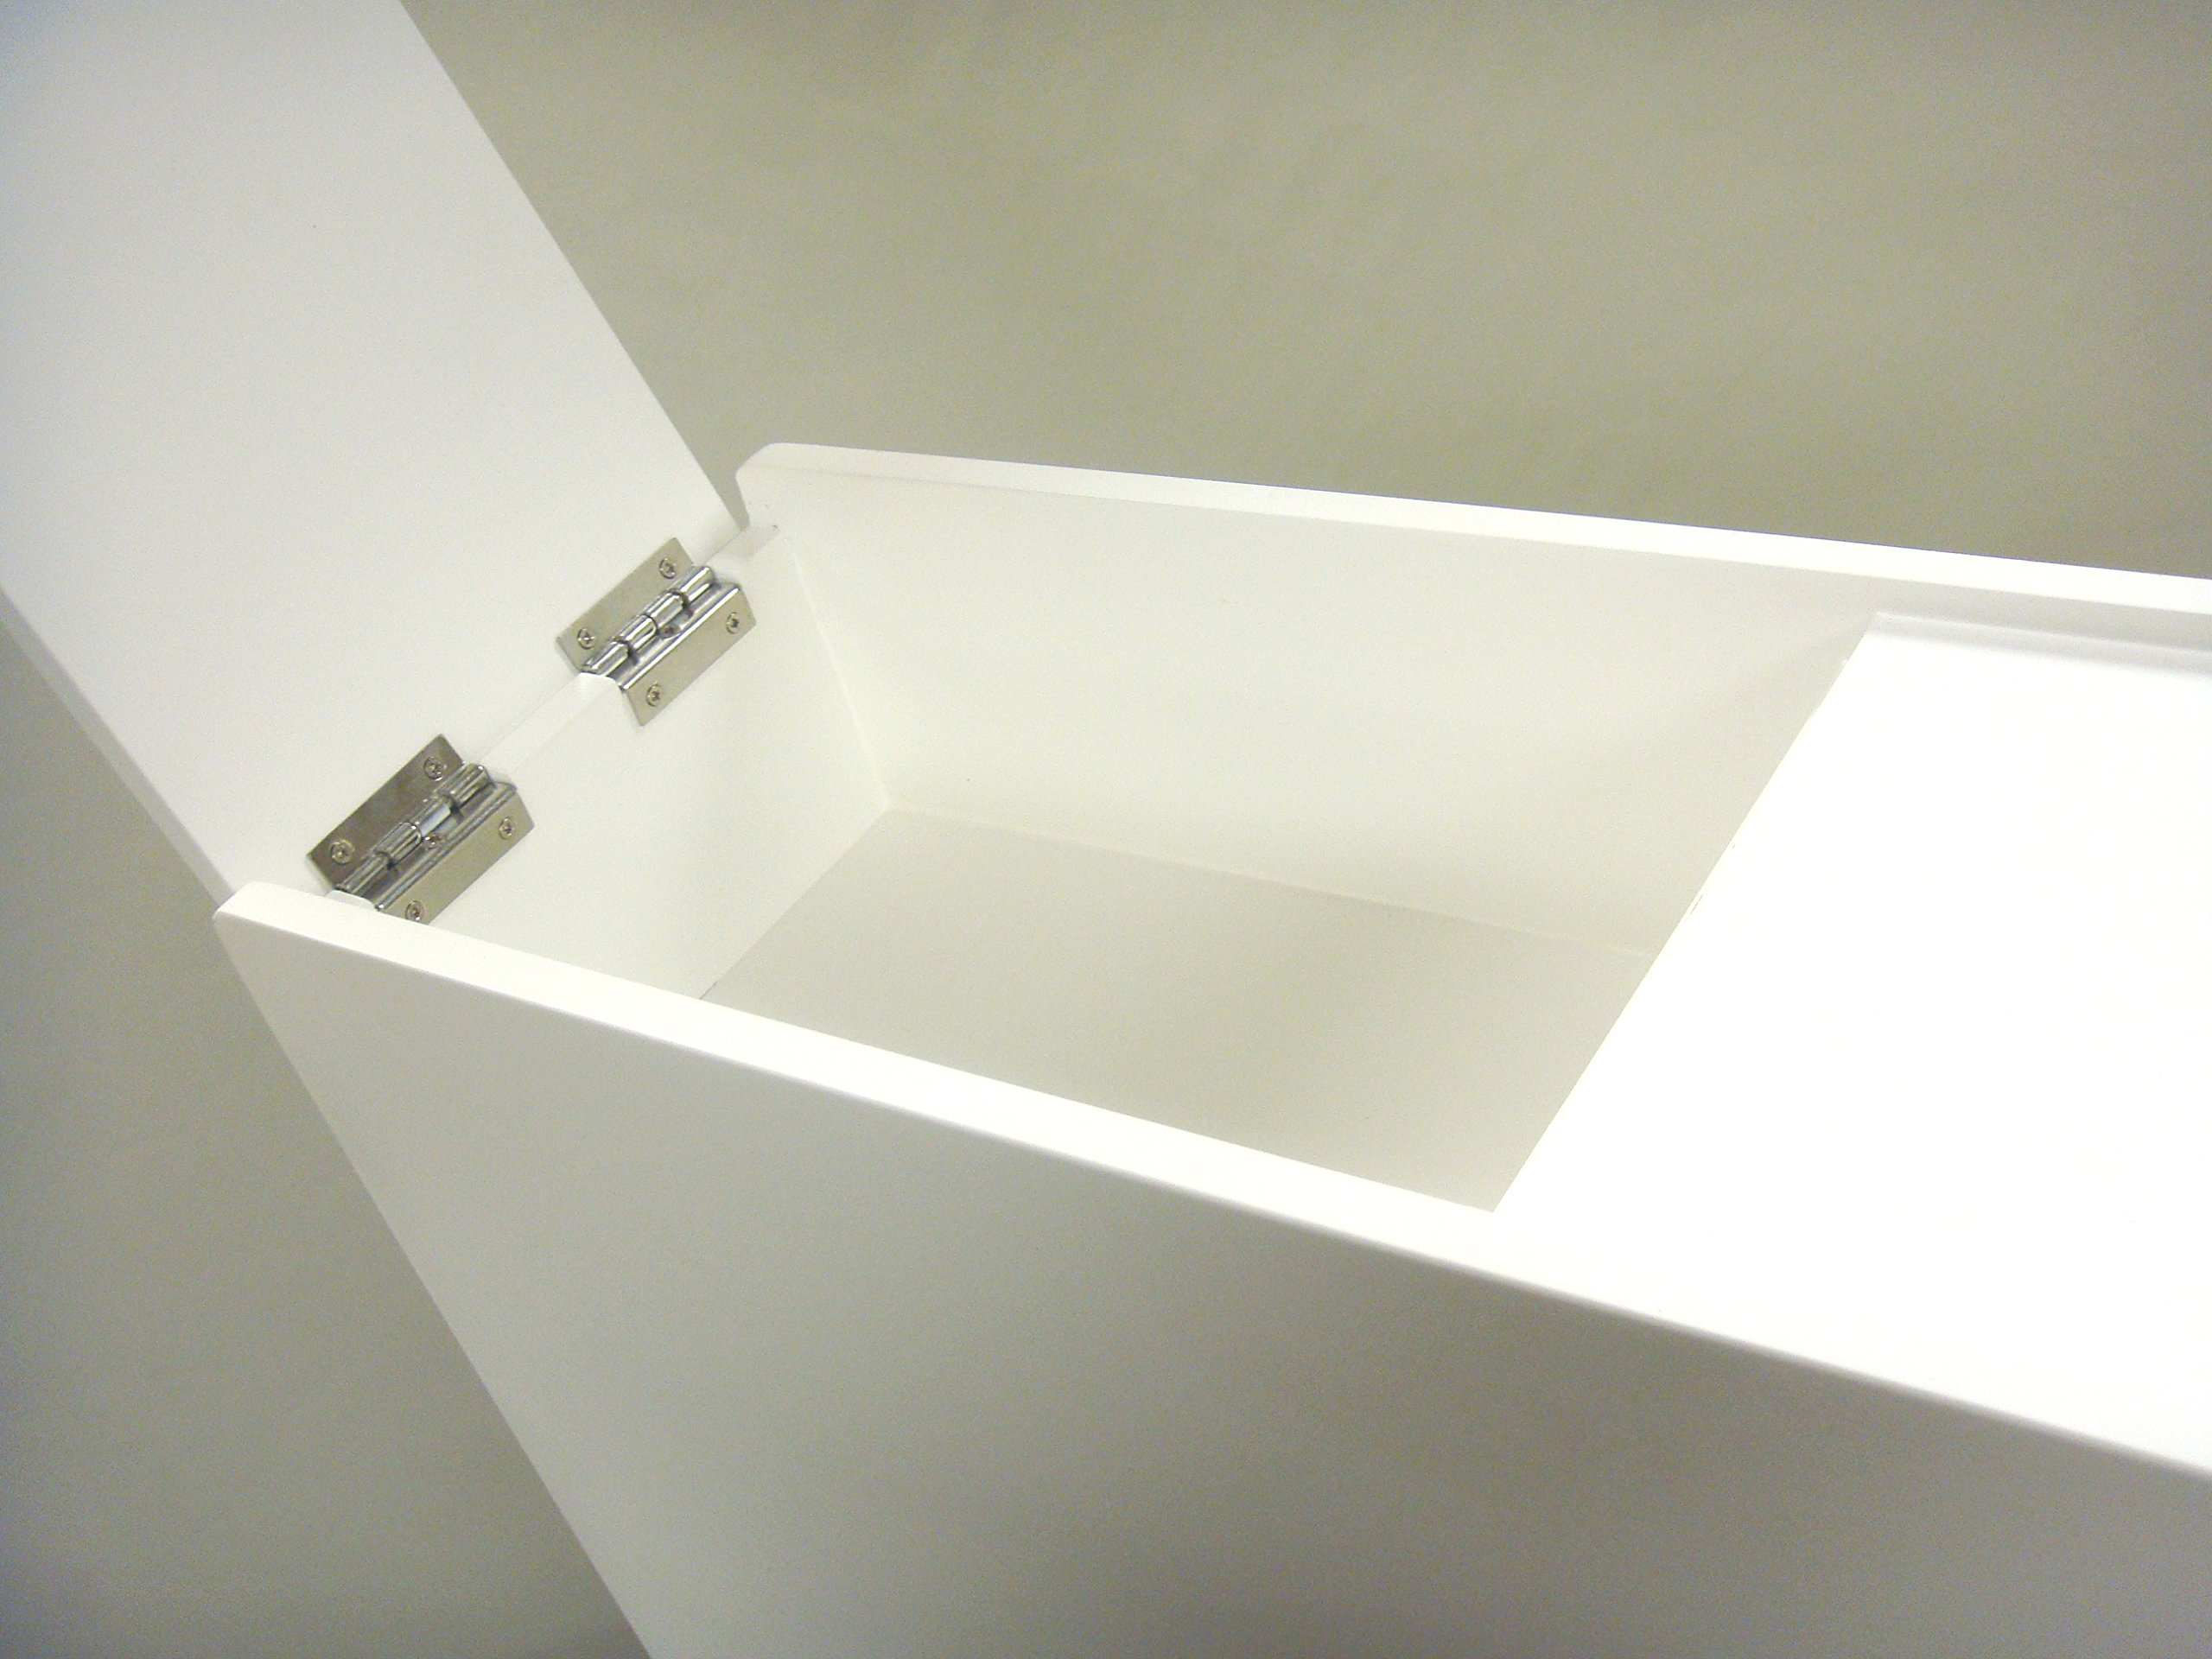 Proman Products Bathroom Floor Cabinet Wood in Pure White by Proman Products (Image #11)